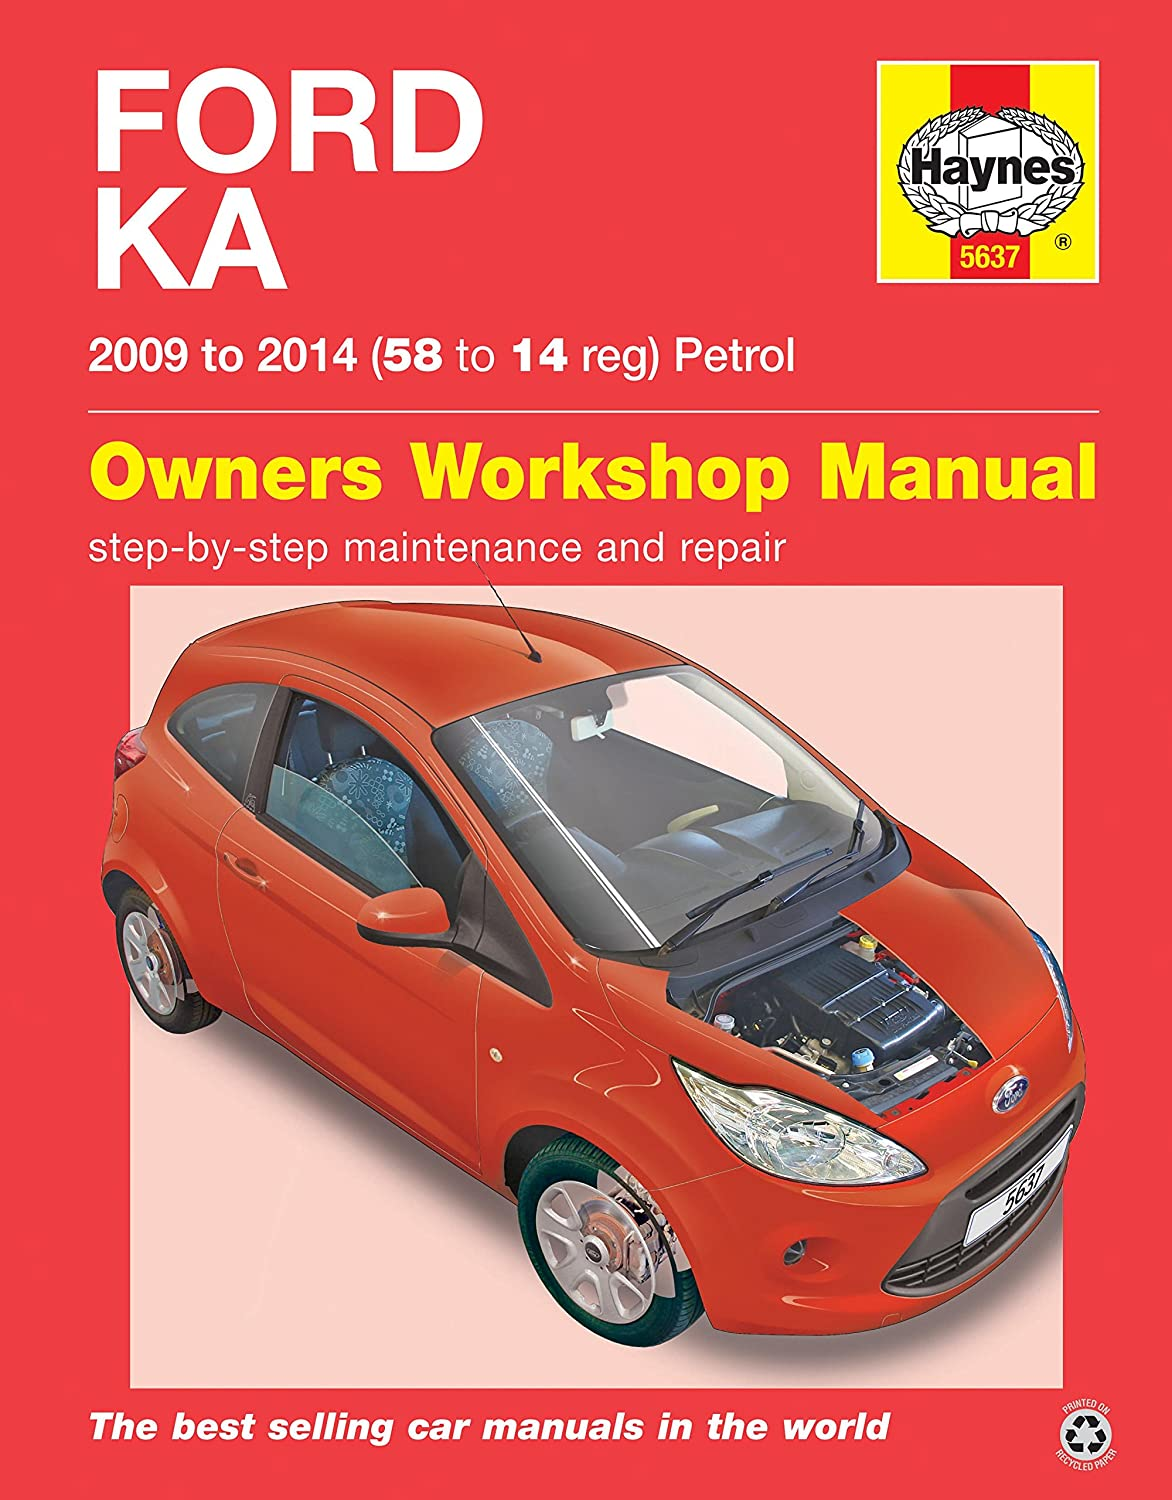 Ford Ka Repair Manual Haynes Manual Service Manual Workshop Manual  2009-2014: Amazon.co.uk: Car & Motorbike